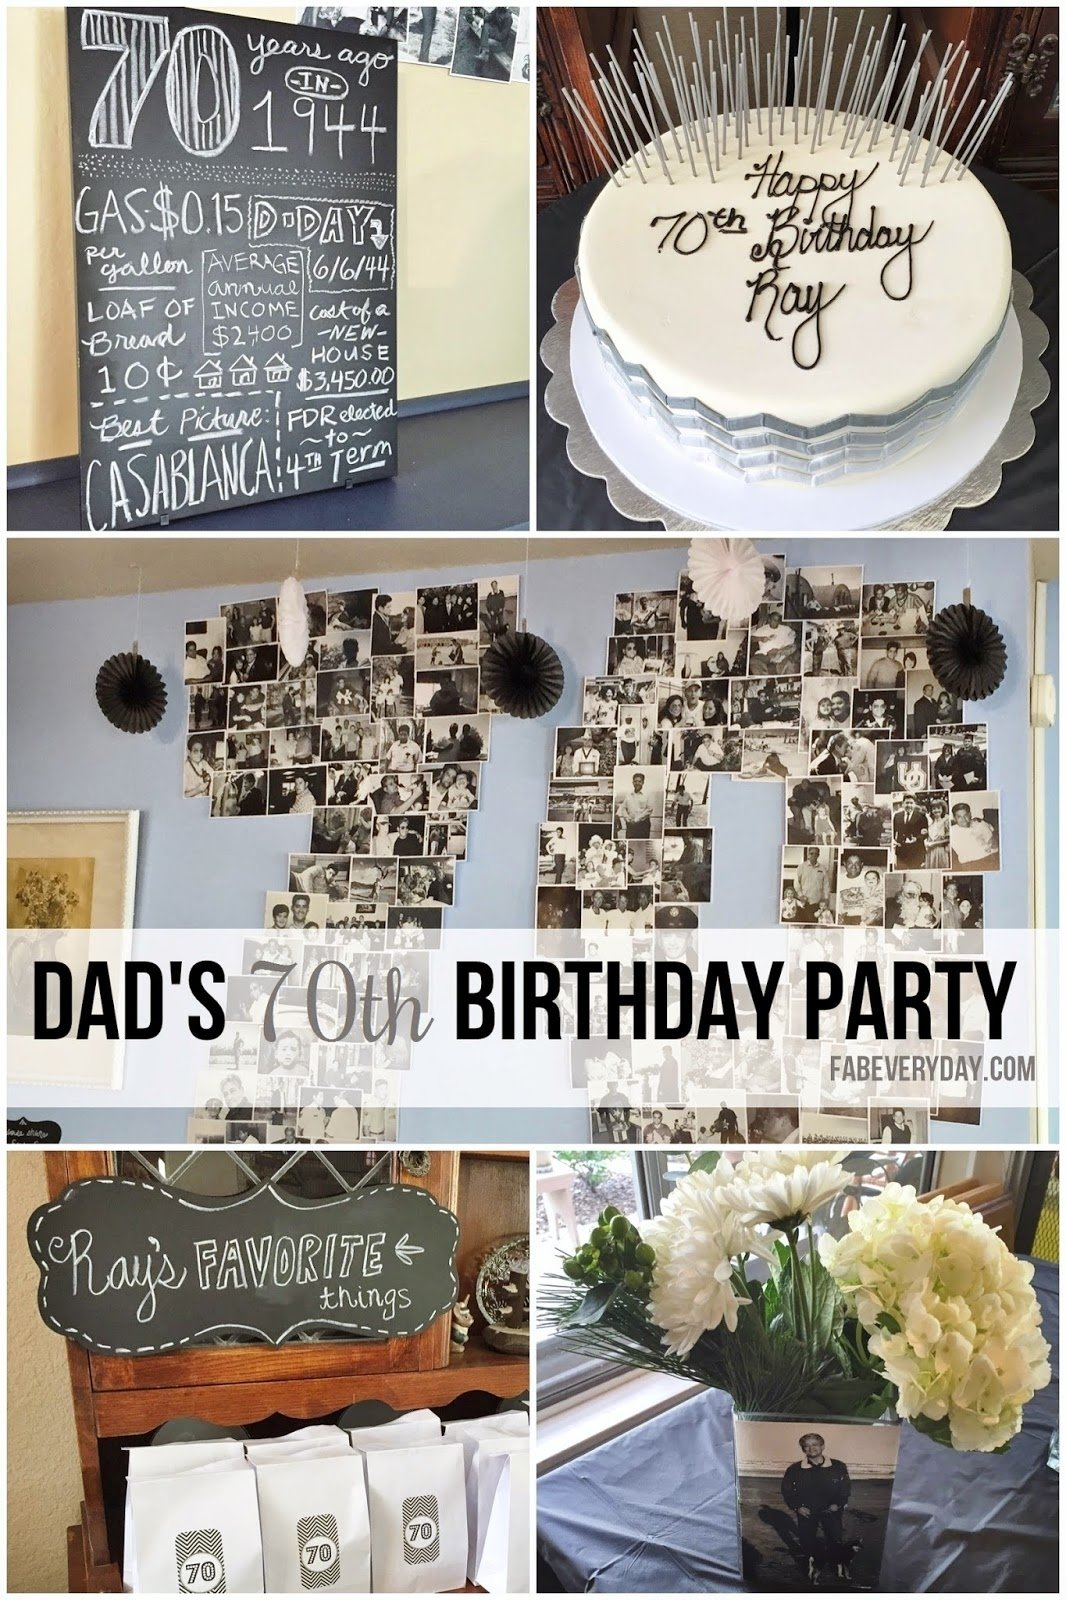 10 Great Surprise 70Th Birthday Party Ideas fab everyday because everyday life should be fabulous www 3